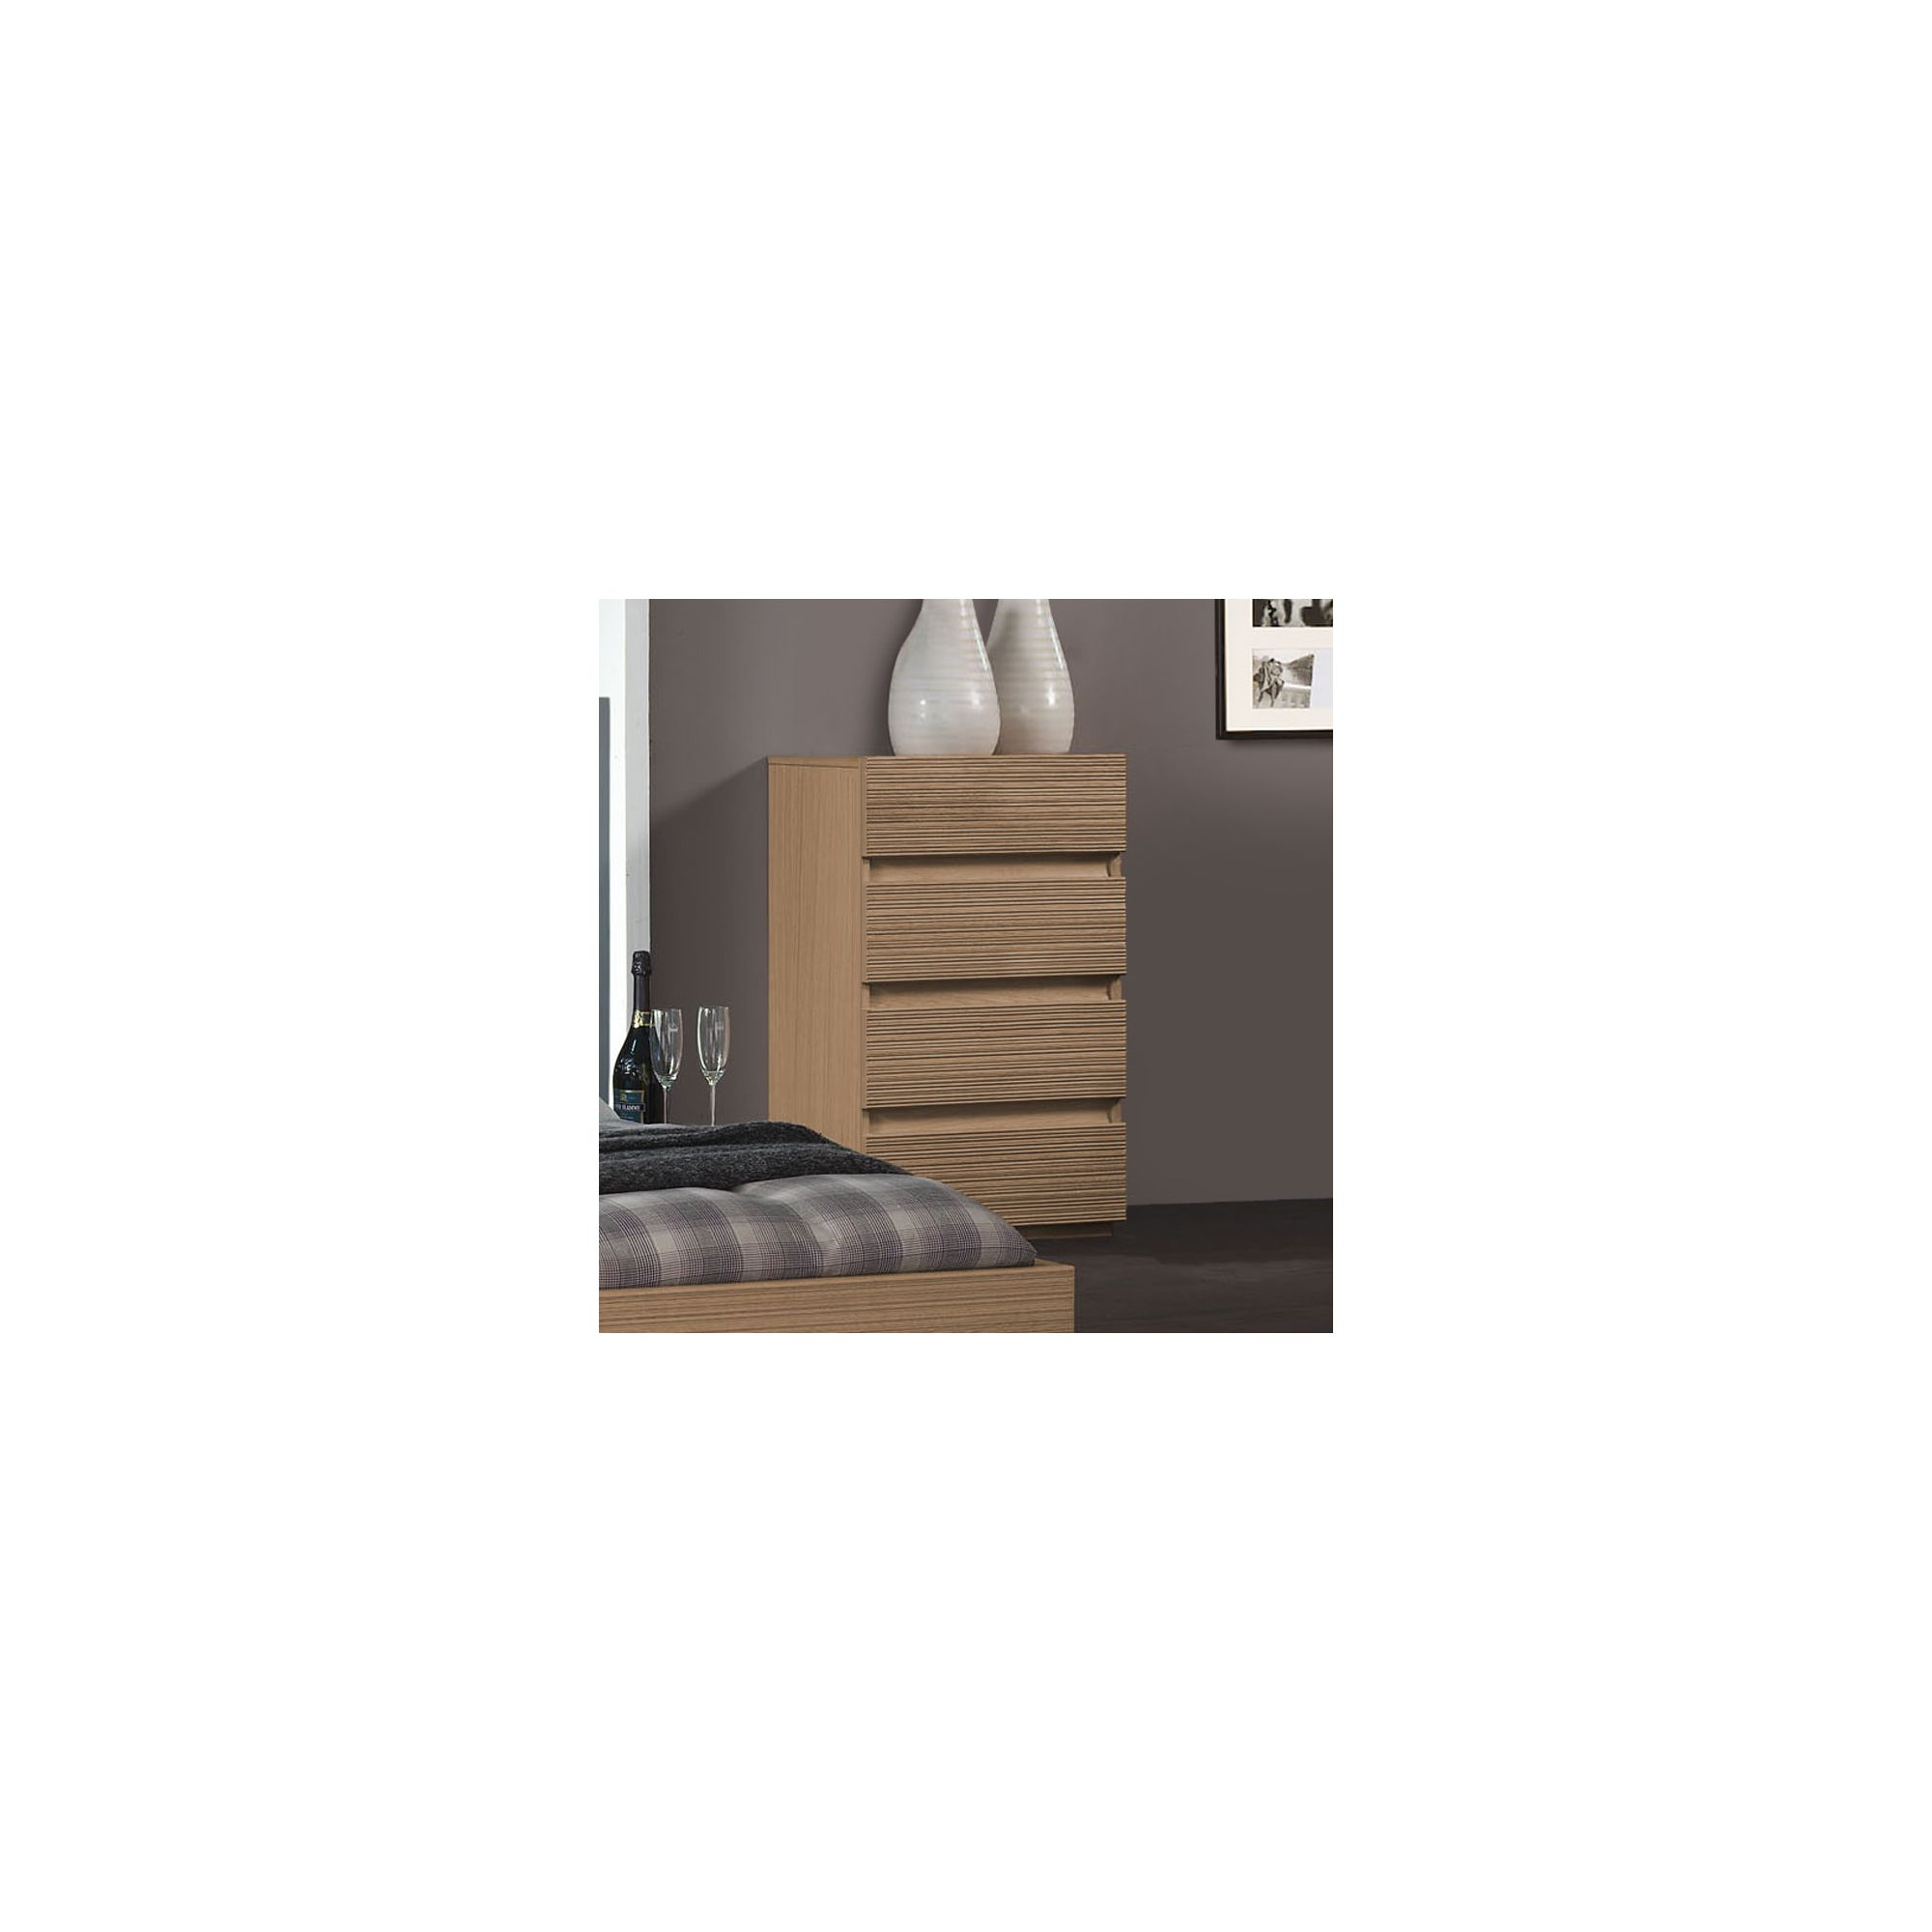 Sleepline Diva 4 Drawer Narrow Chest - Mat Lacquered at Tesco Direct